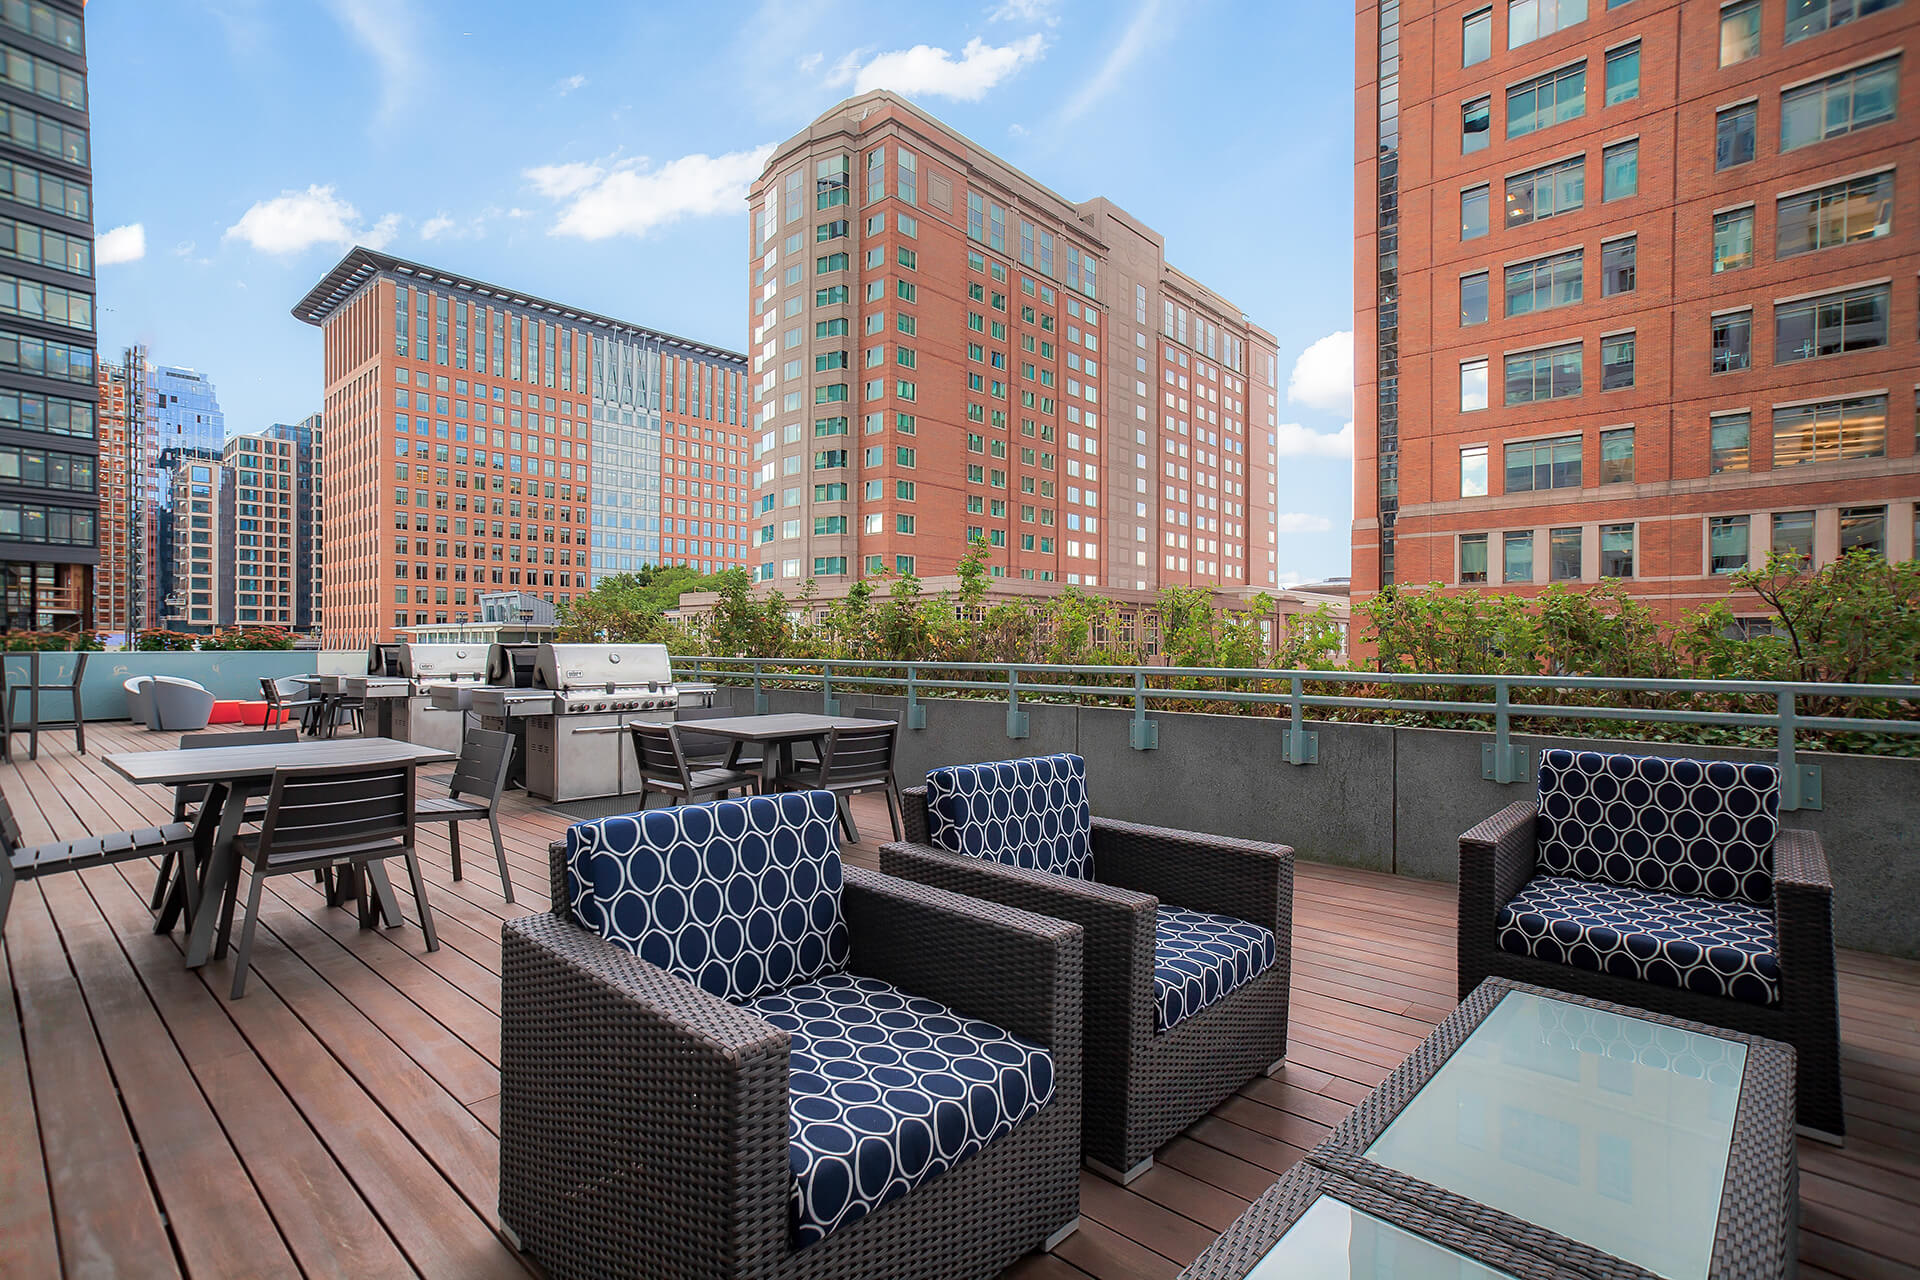 Elevated Outdoor Living Space with Multiple Grills and Dining Area at Waterside Place by Windsor, 505 Congress St, Boston